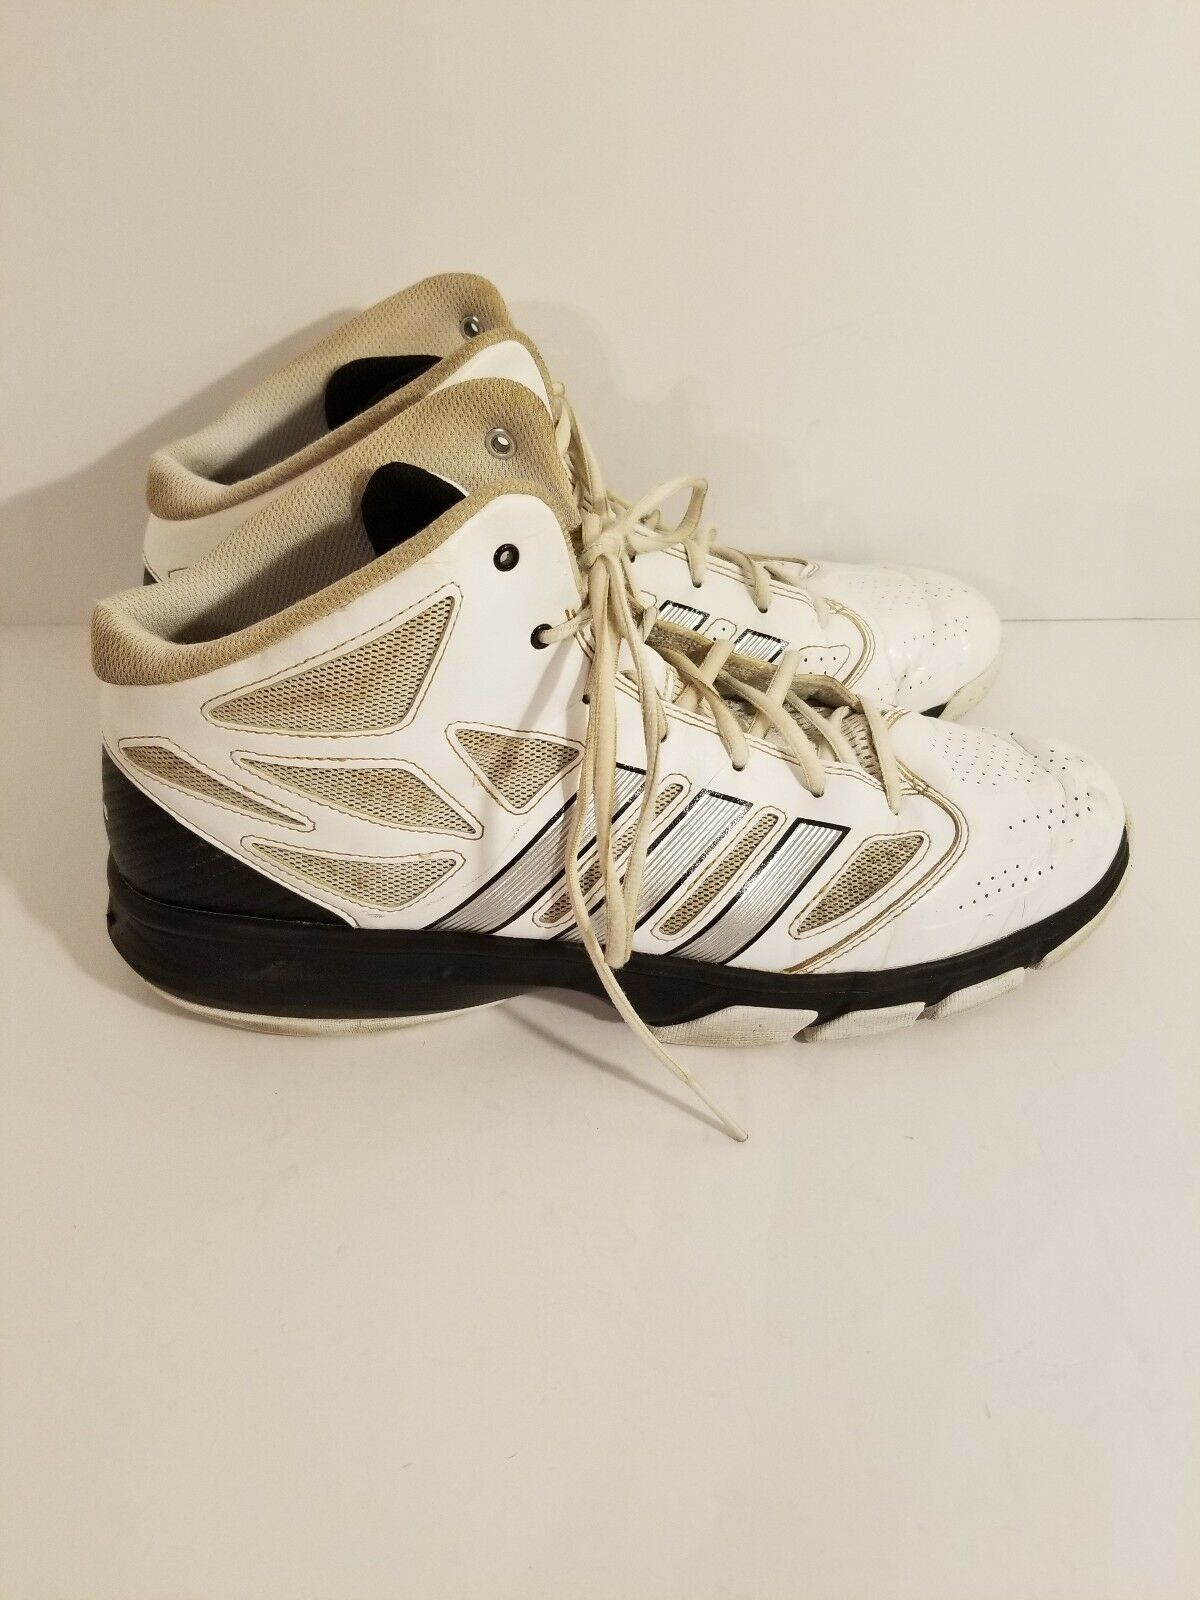 Primary image for Adidas Mens BasketBall Cross Em2 G99040 Torsion System Size 13 US